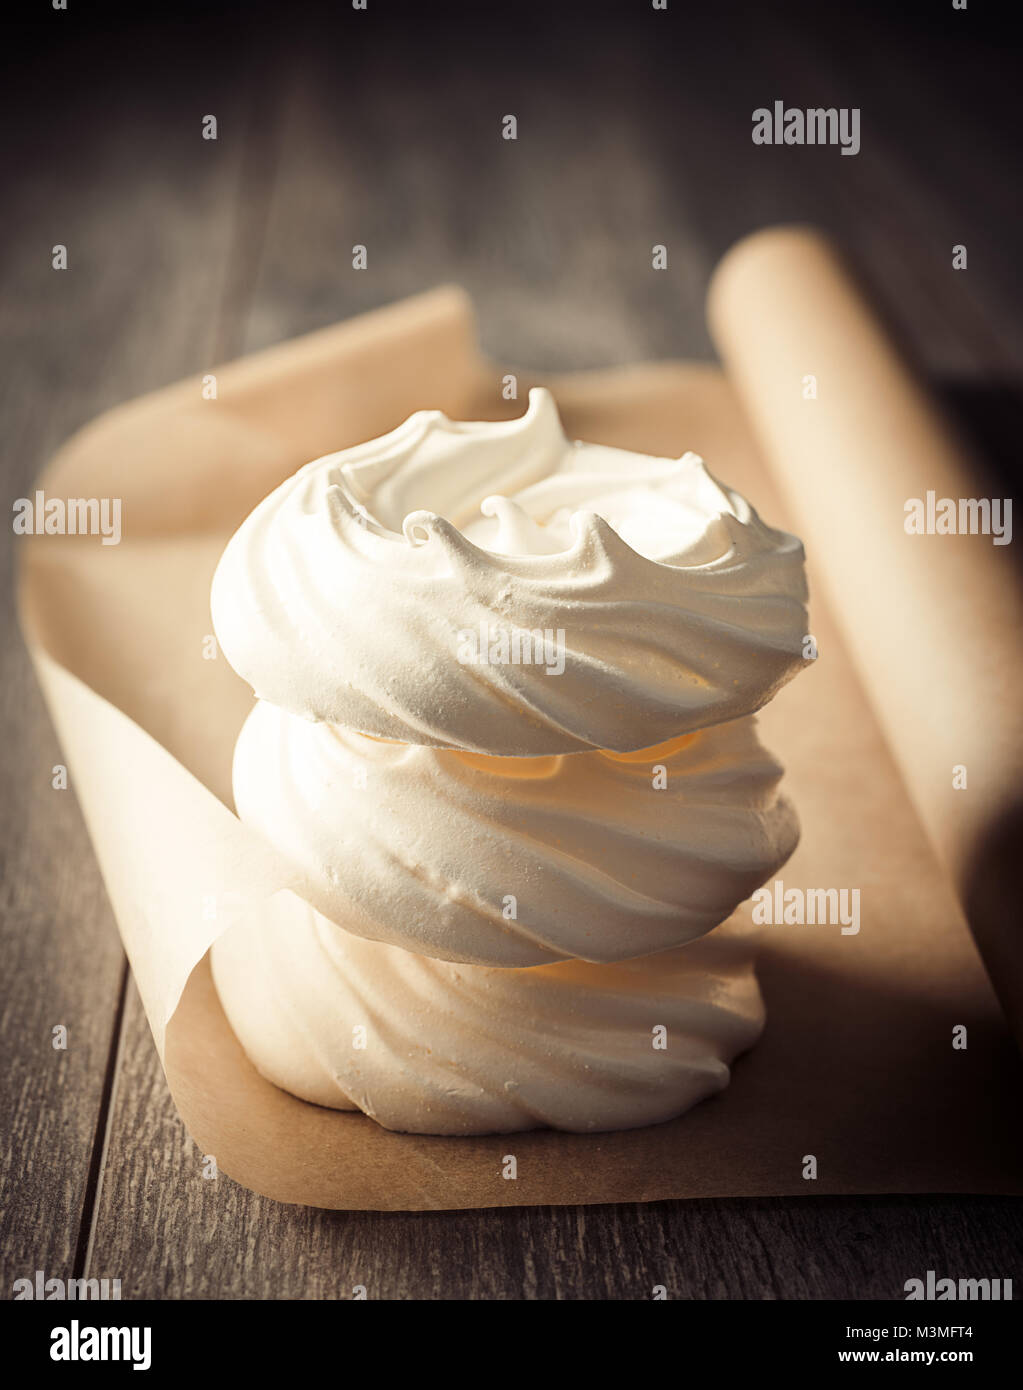 Stack of three meringue nests on parchment paper fresh out of the oven - Stock Image